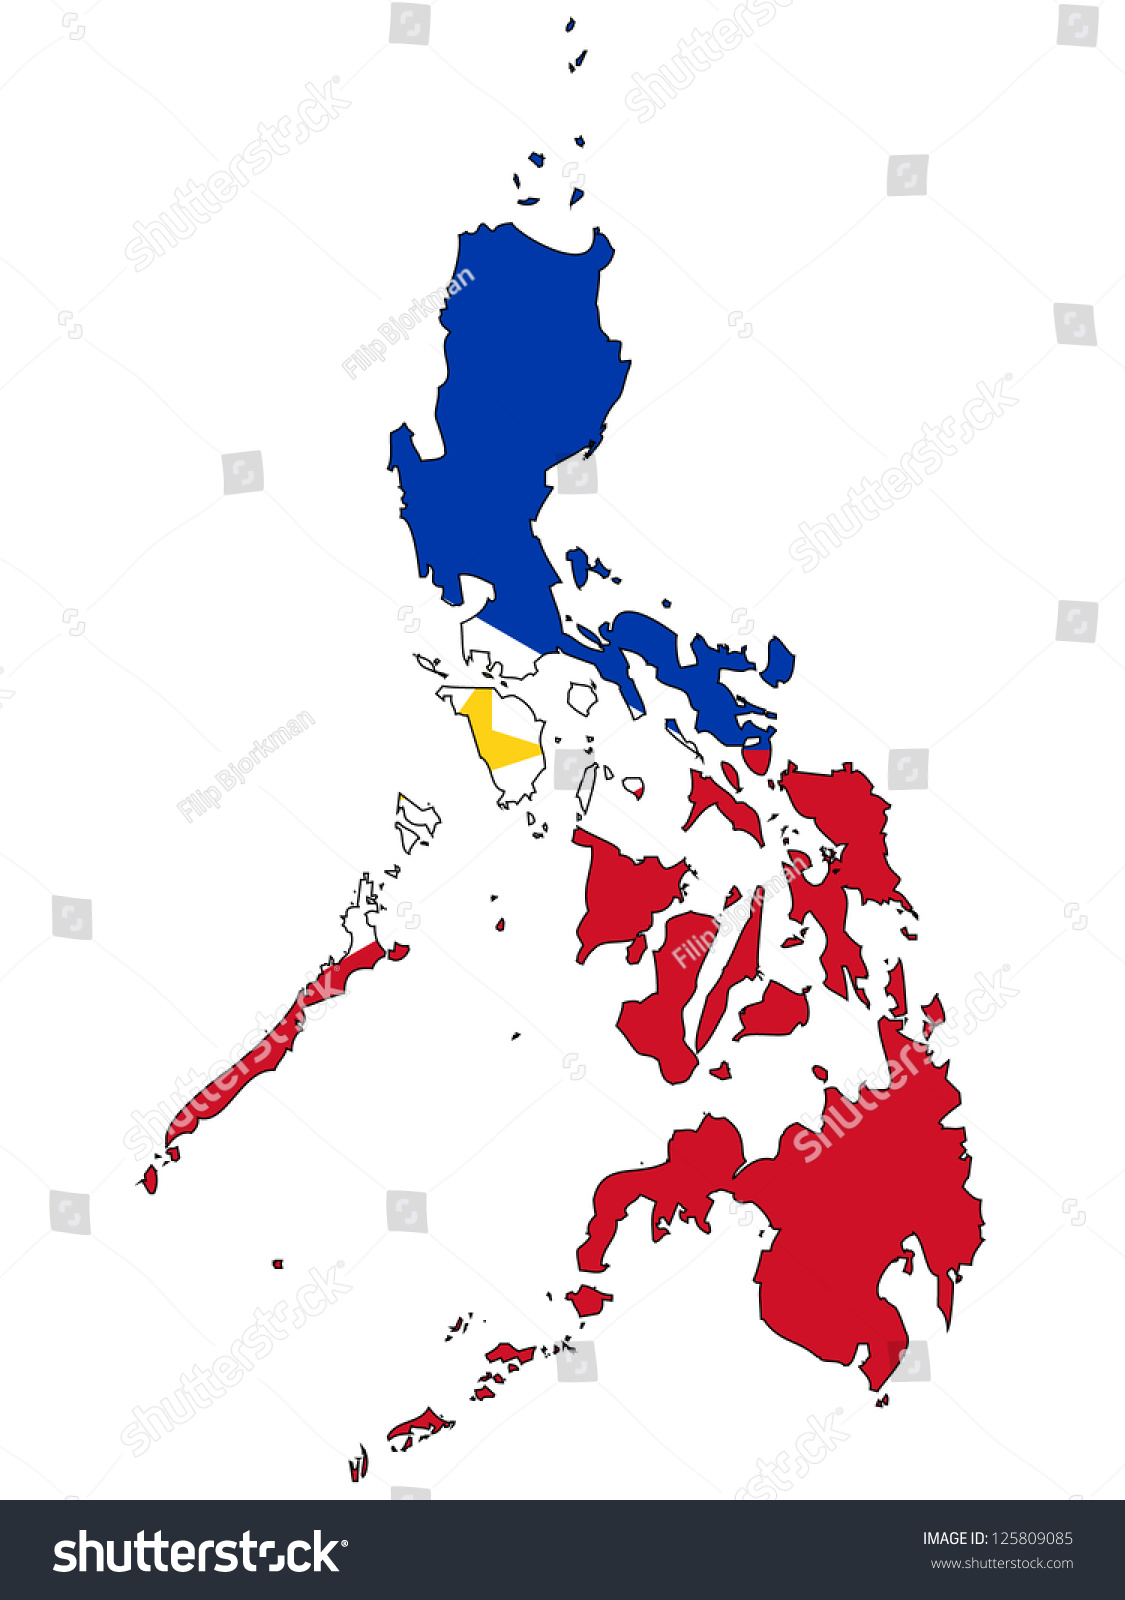 philippine map clipart black and white - photo #29